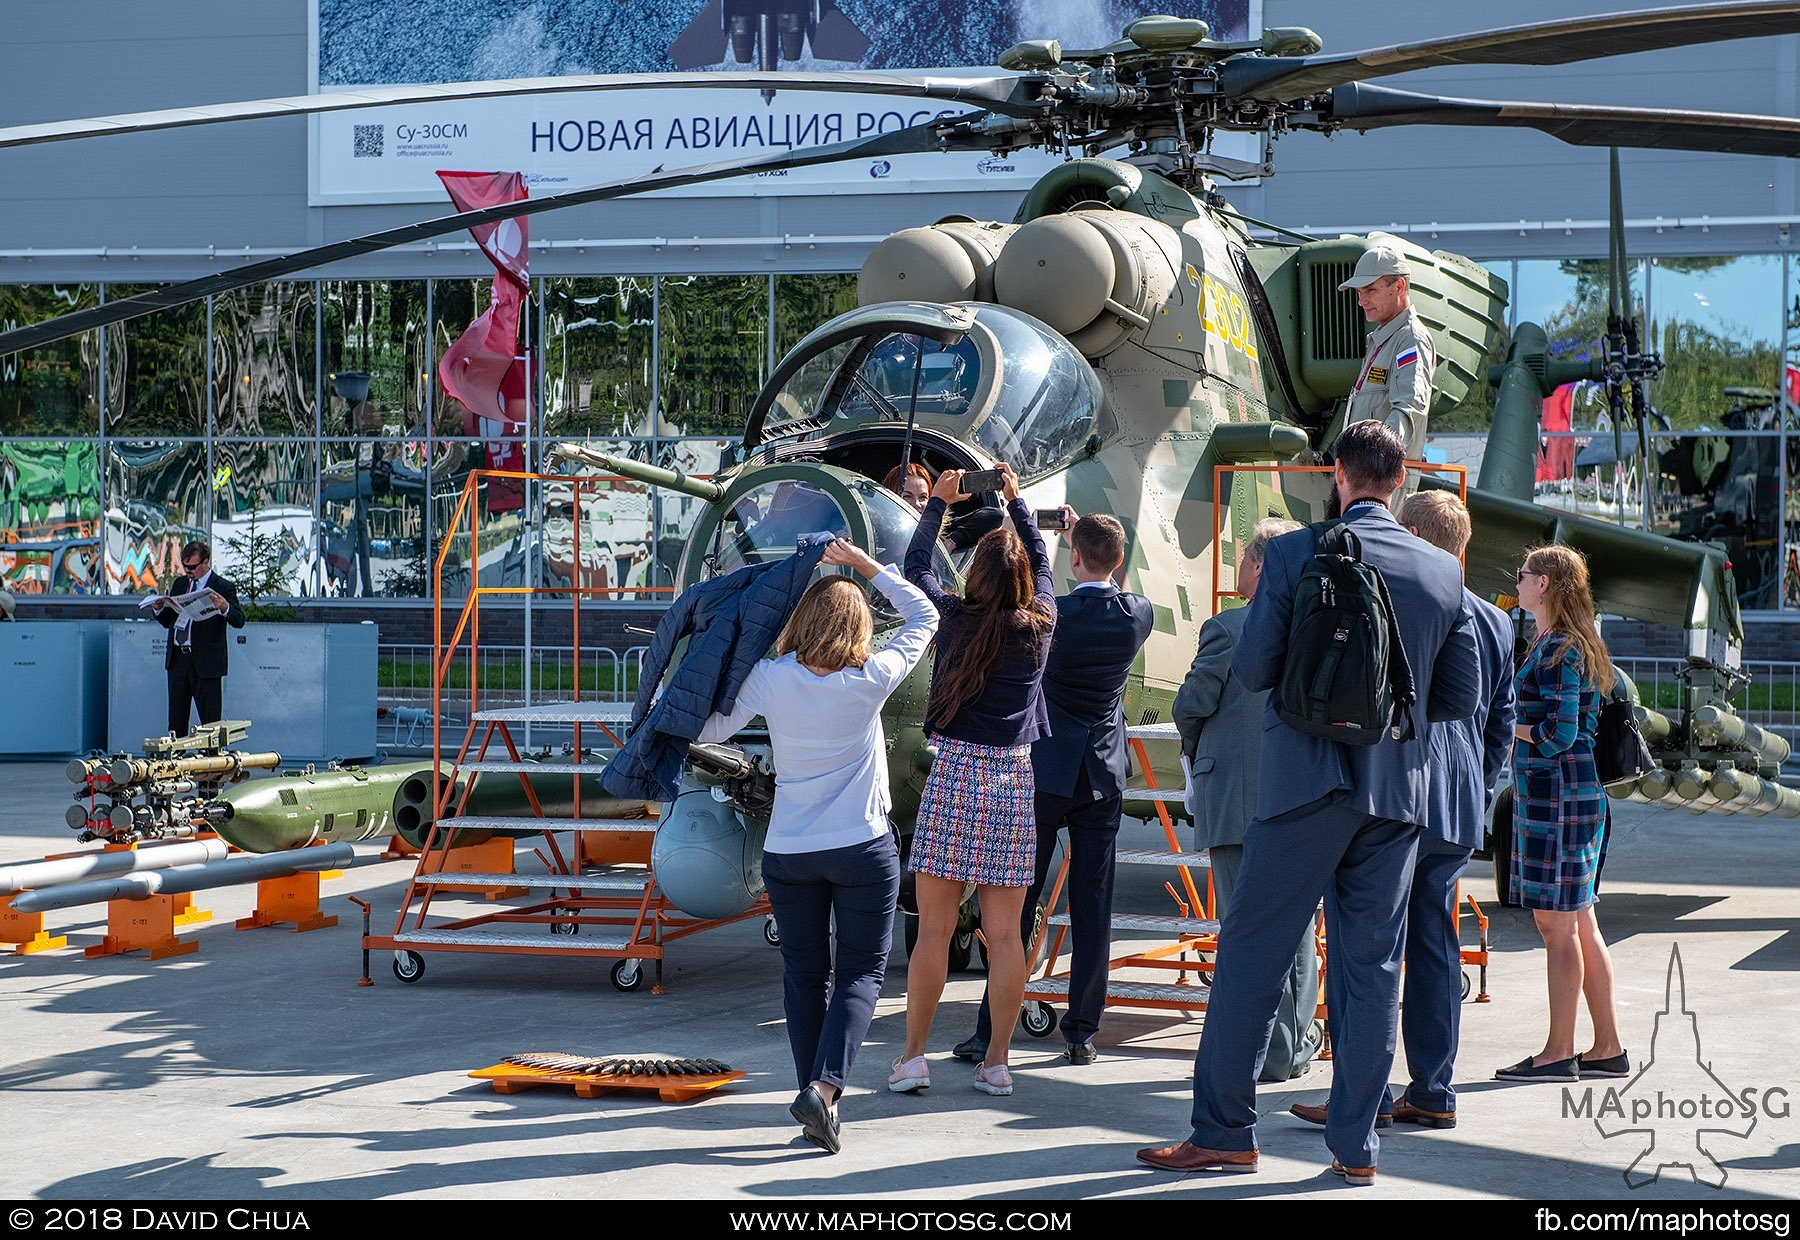 07. Visitors take photos with the Mi-35 Hind